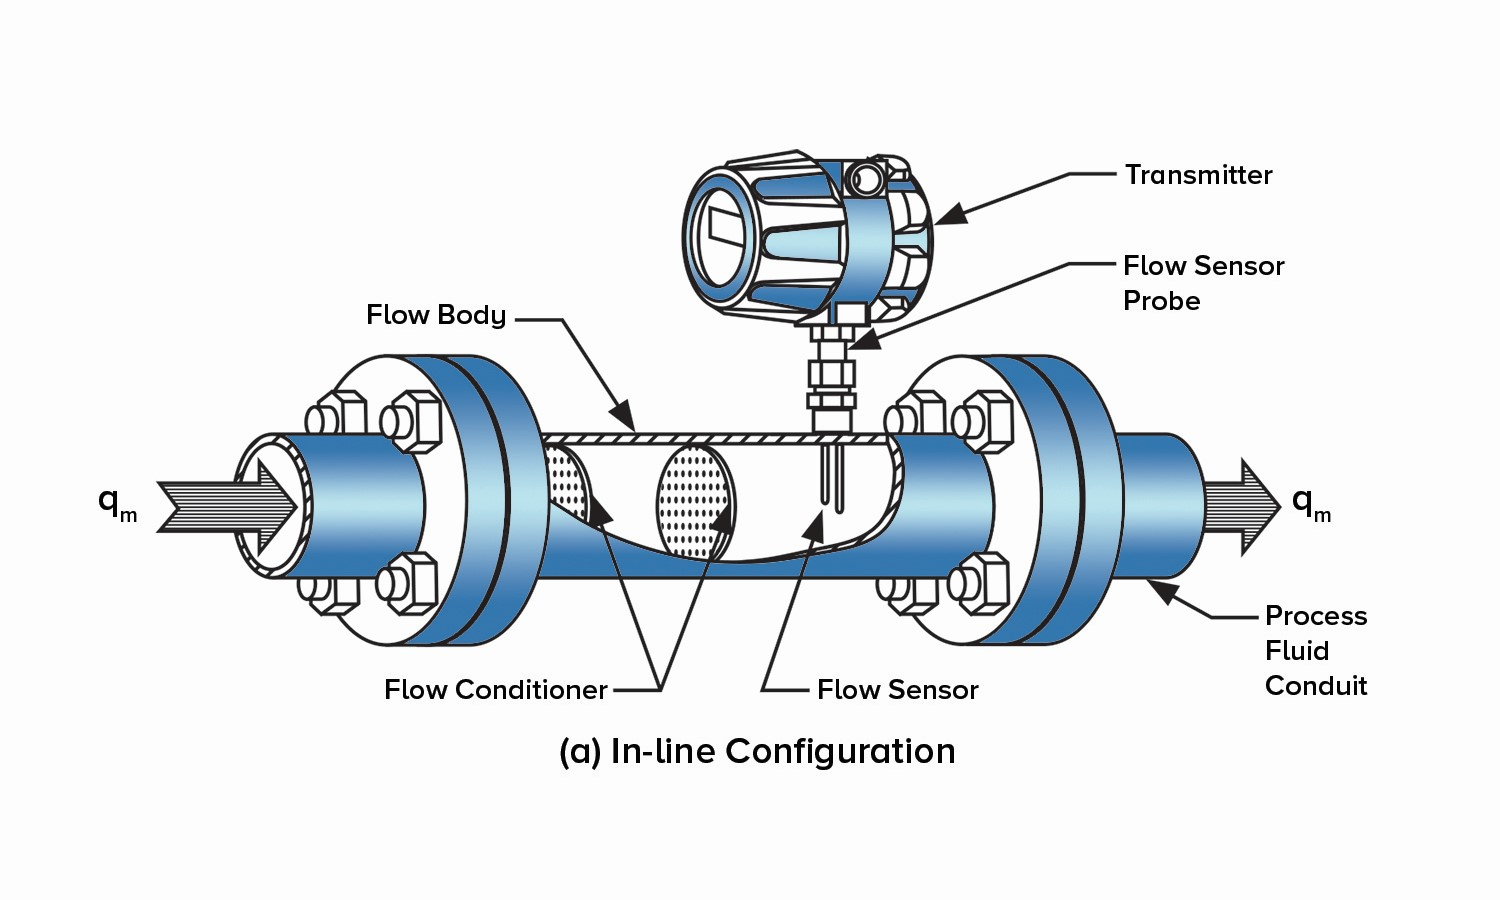 thermal flow meter in-line configuration diagram